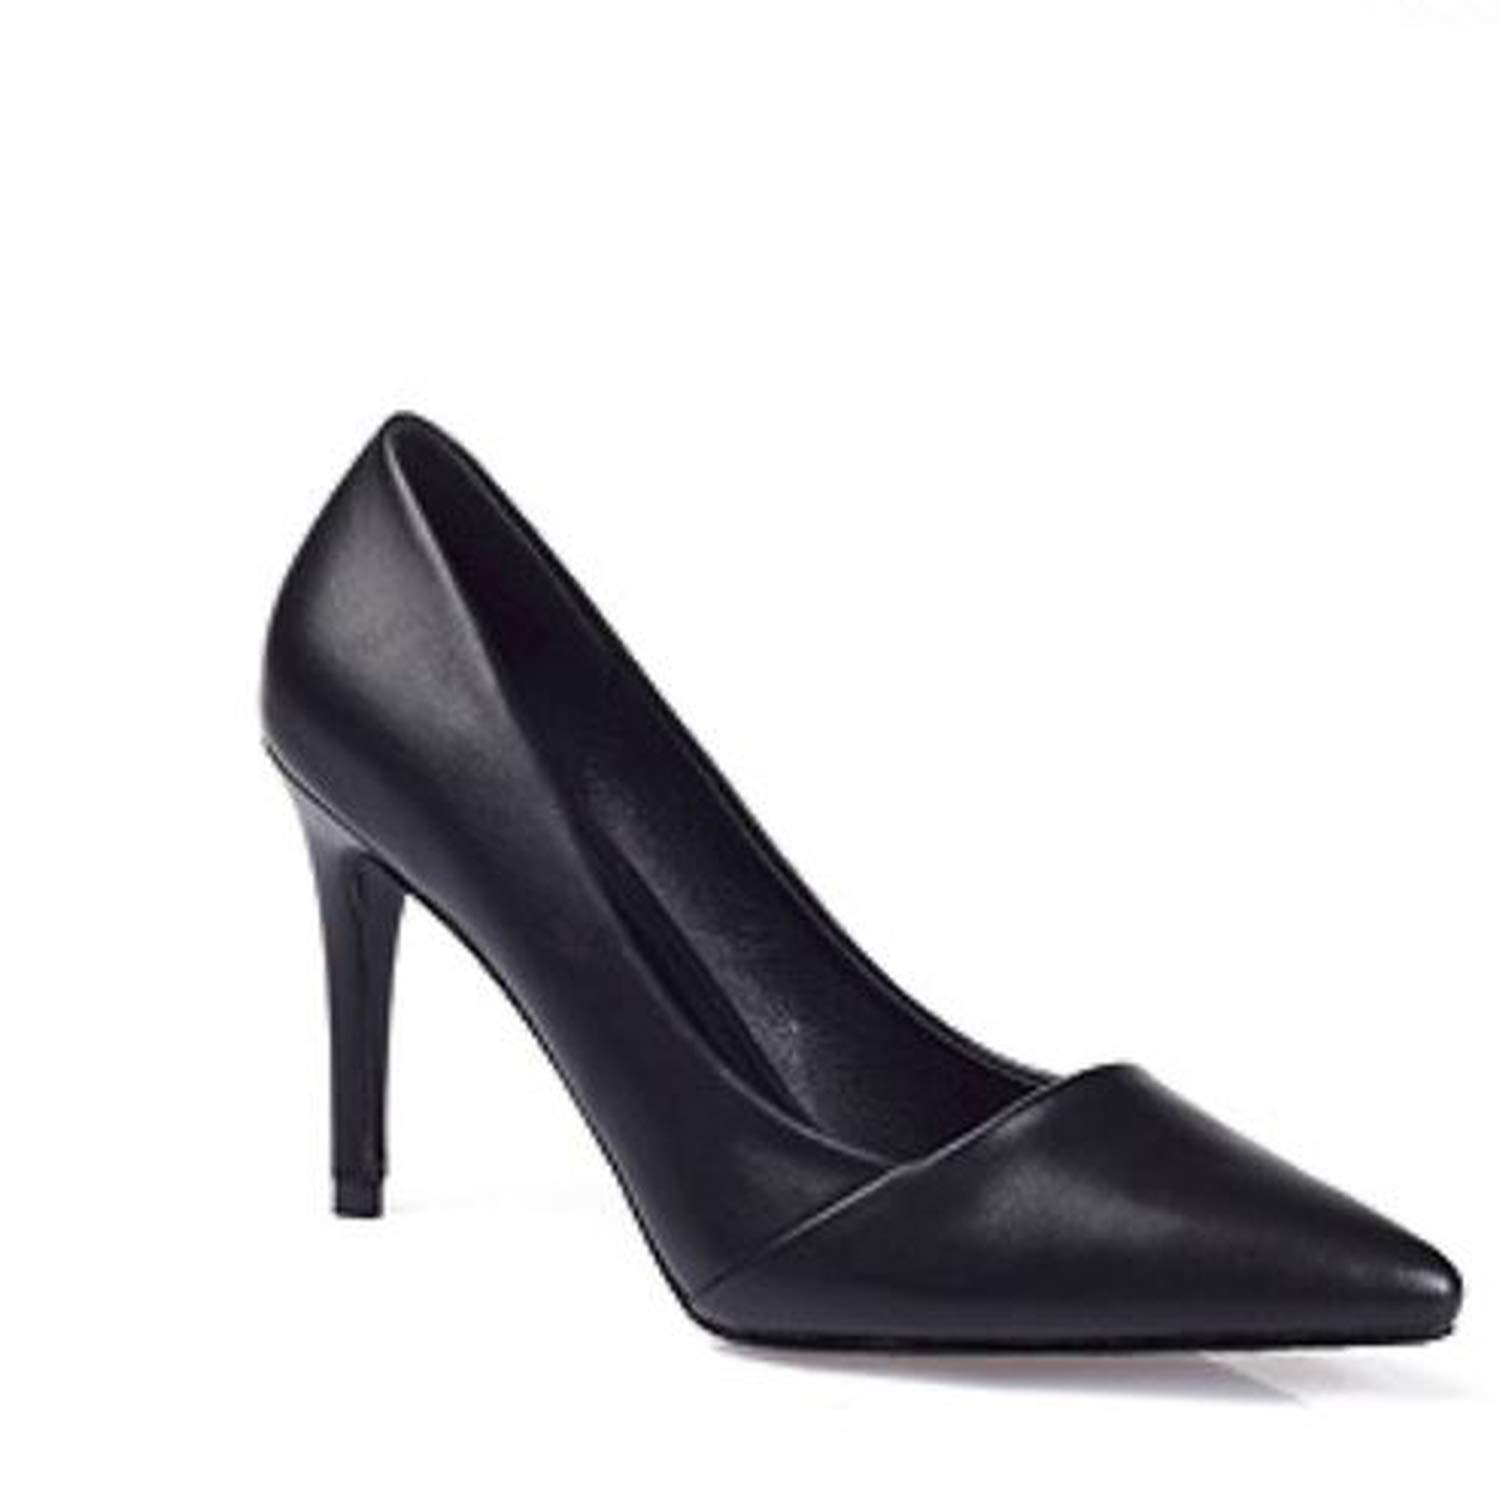 2019 Elegant New Pointed high-Heeled Shoes respectively 5CM 7CM 9CM high Heels with Suede sub-sfoes Woman Shoes,7 cm high Heels,8